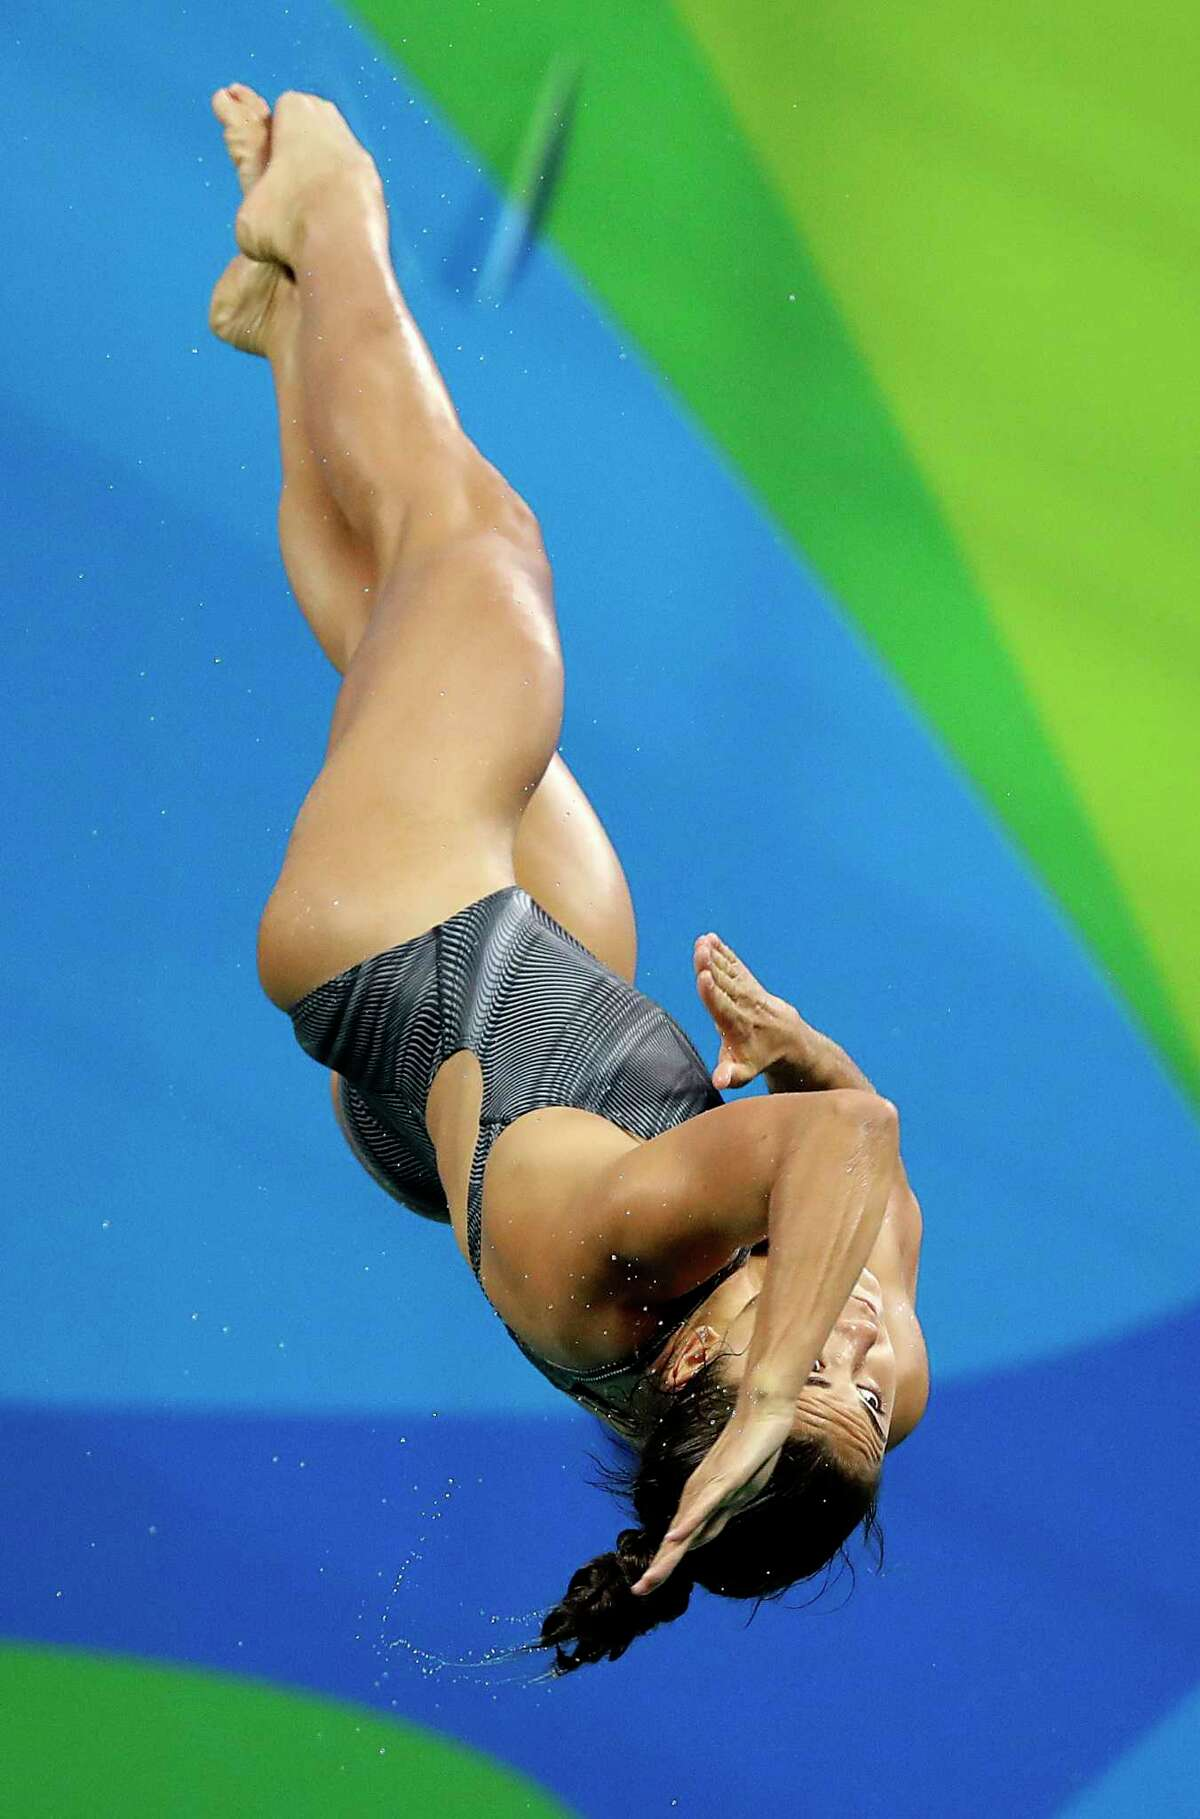 United States' Kassidy Cook competes during the women's 3-meter springboard diving preliminary round in the Maria Lenk Aquatic Center at the 2016 Summer Olympics in Rio de Janeiro, Brazil, Friday, Aug. 12, 2016. (AP Photo/Wong Maye-E)